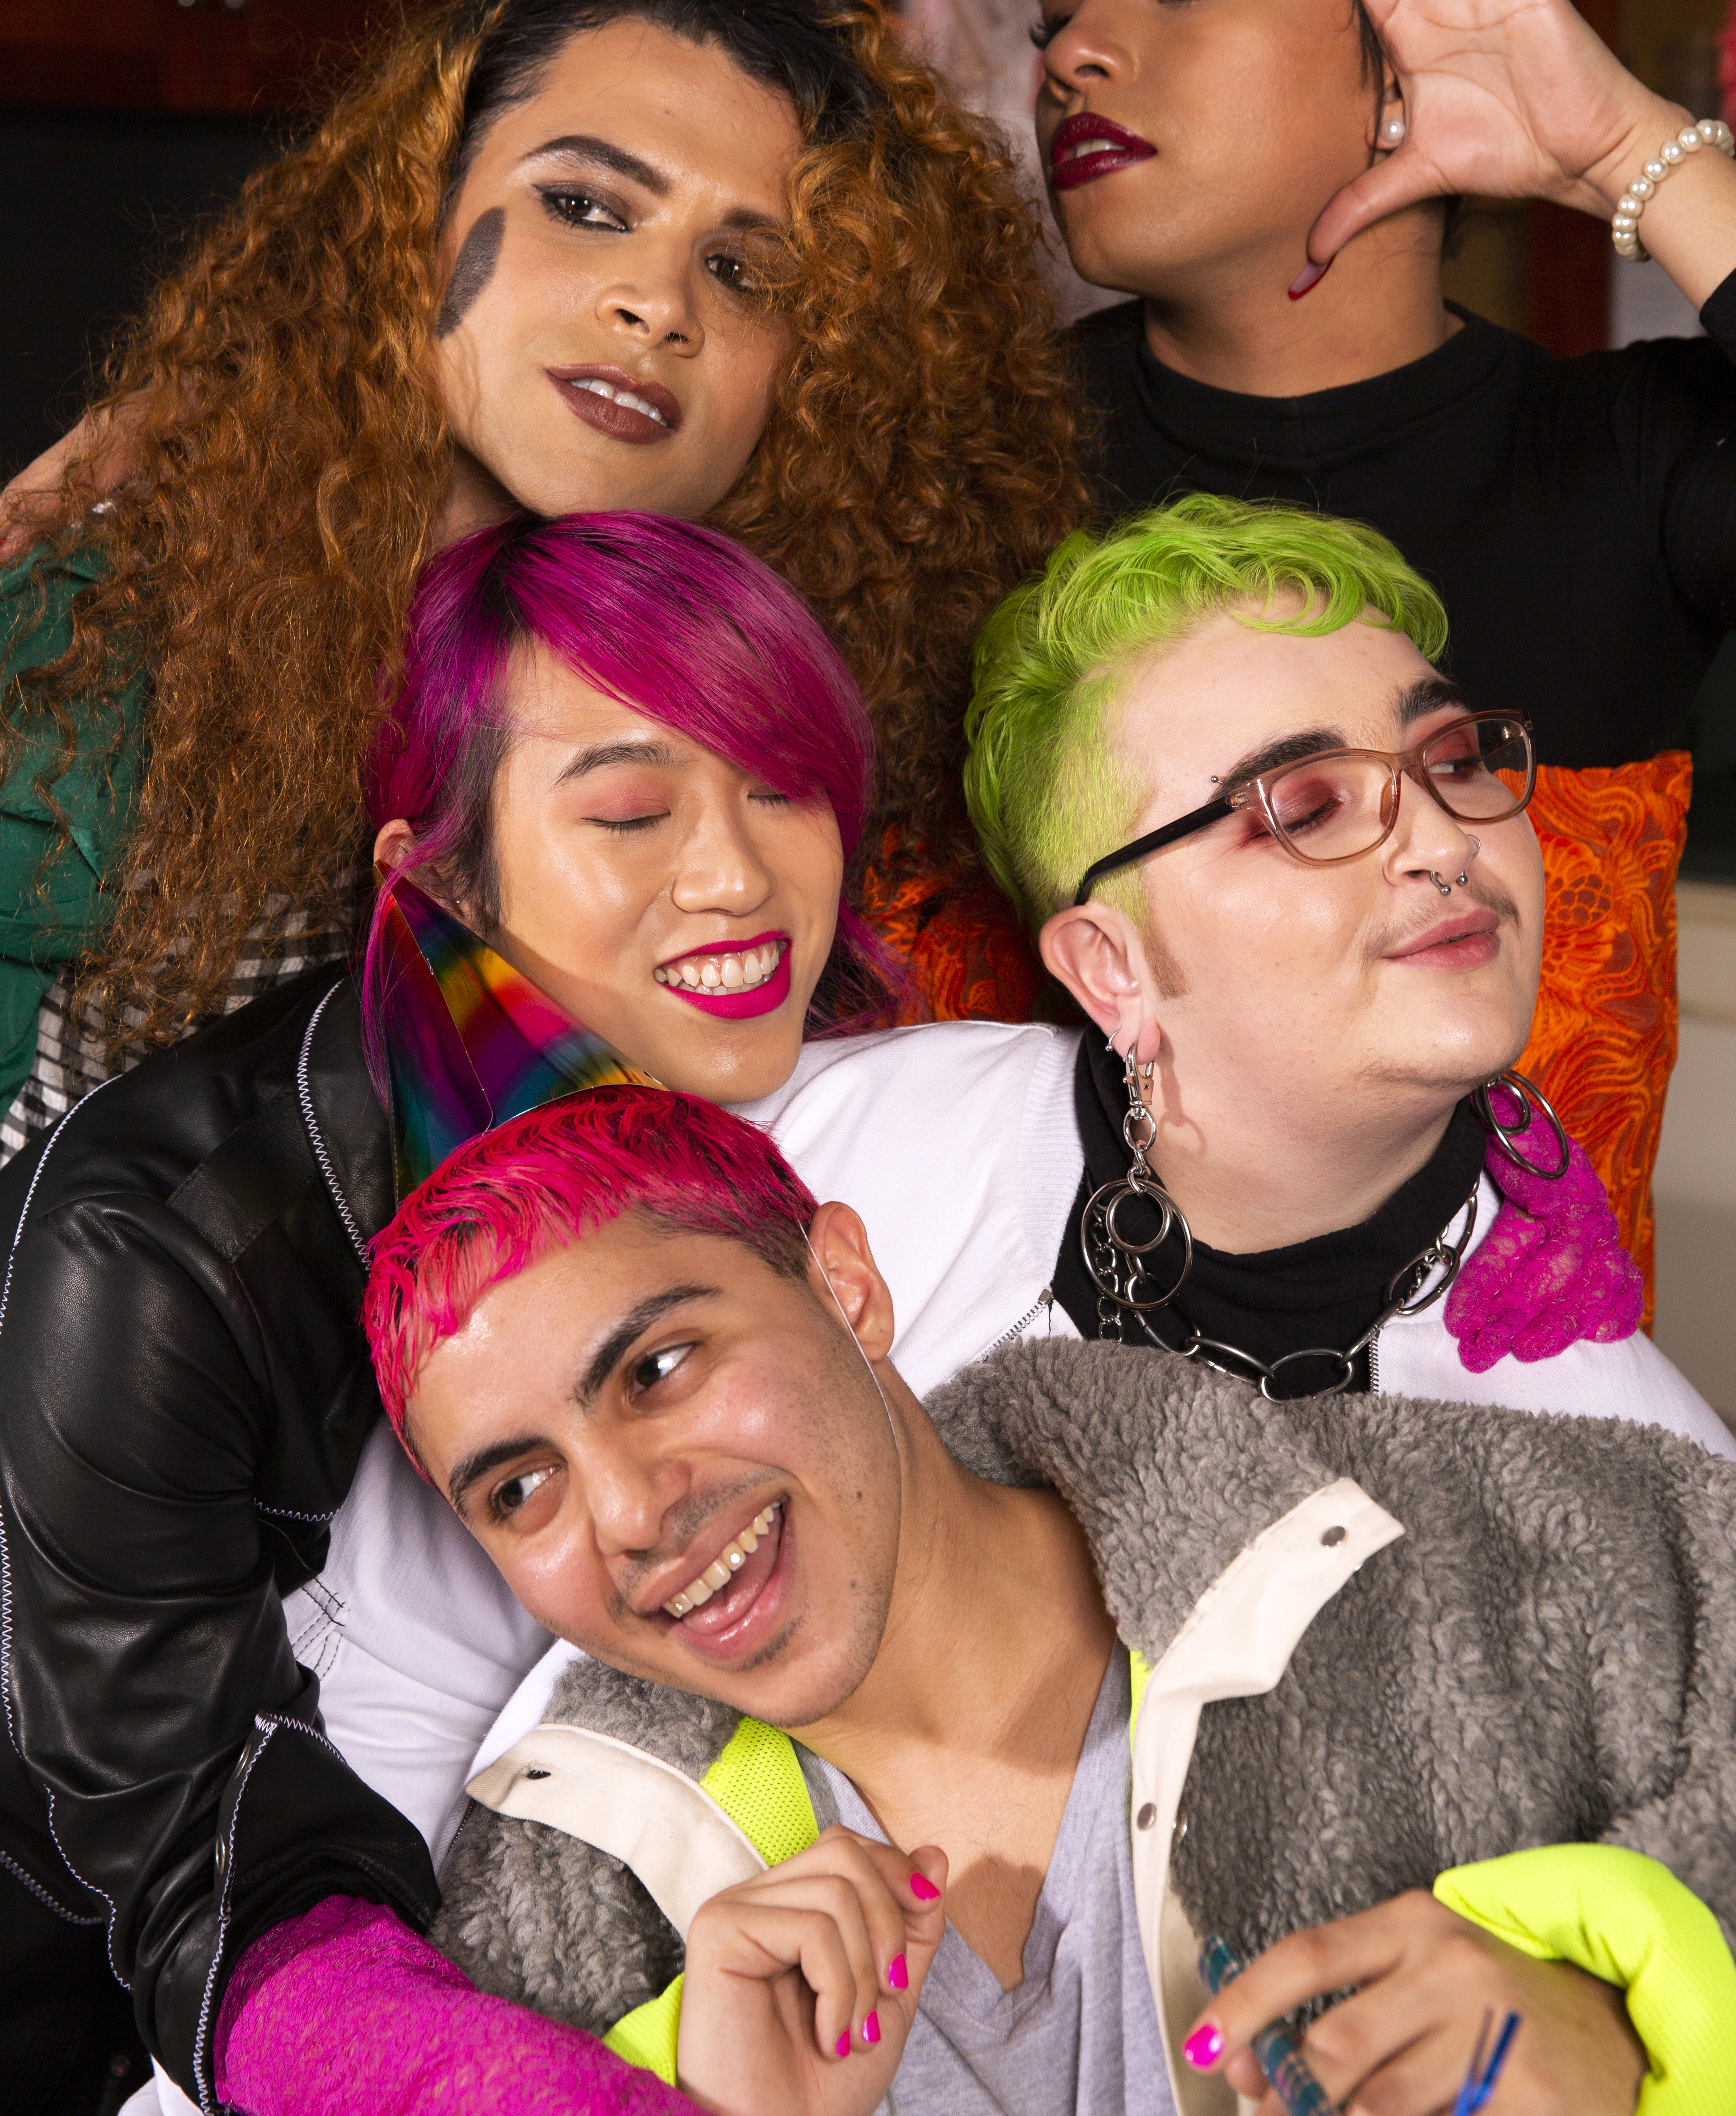 A group of friends of varying genders taking a photo at a party